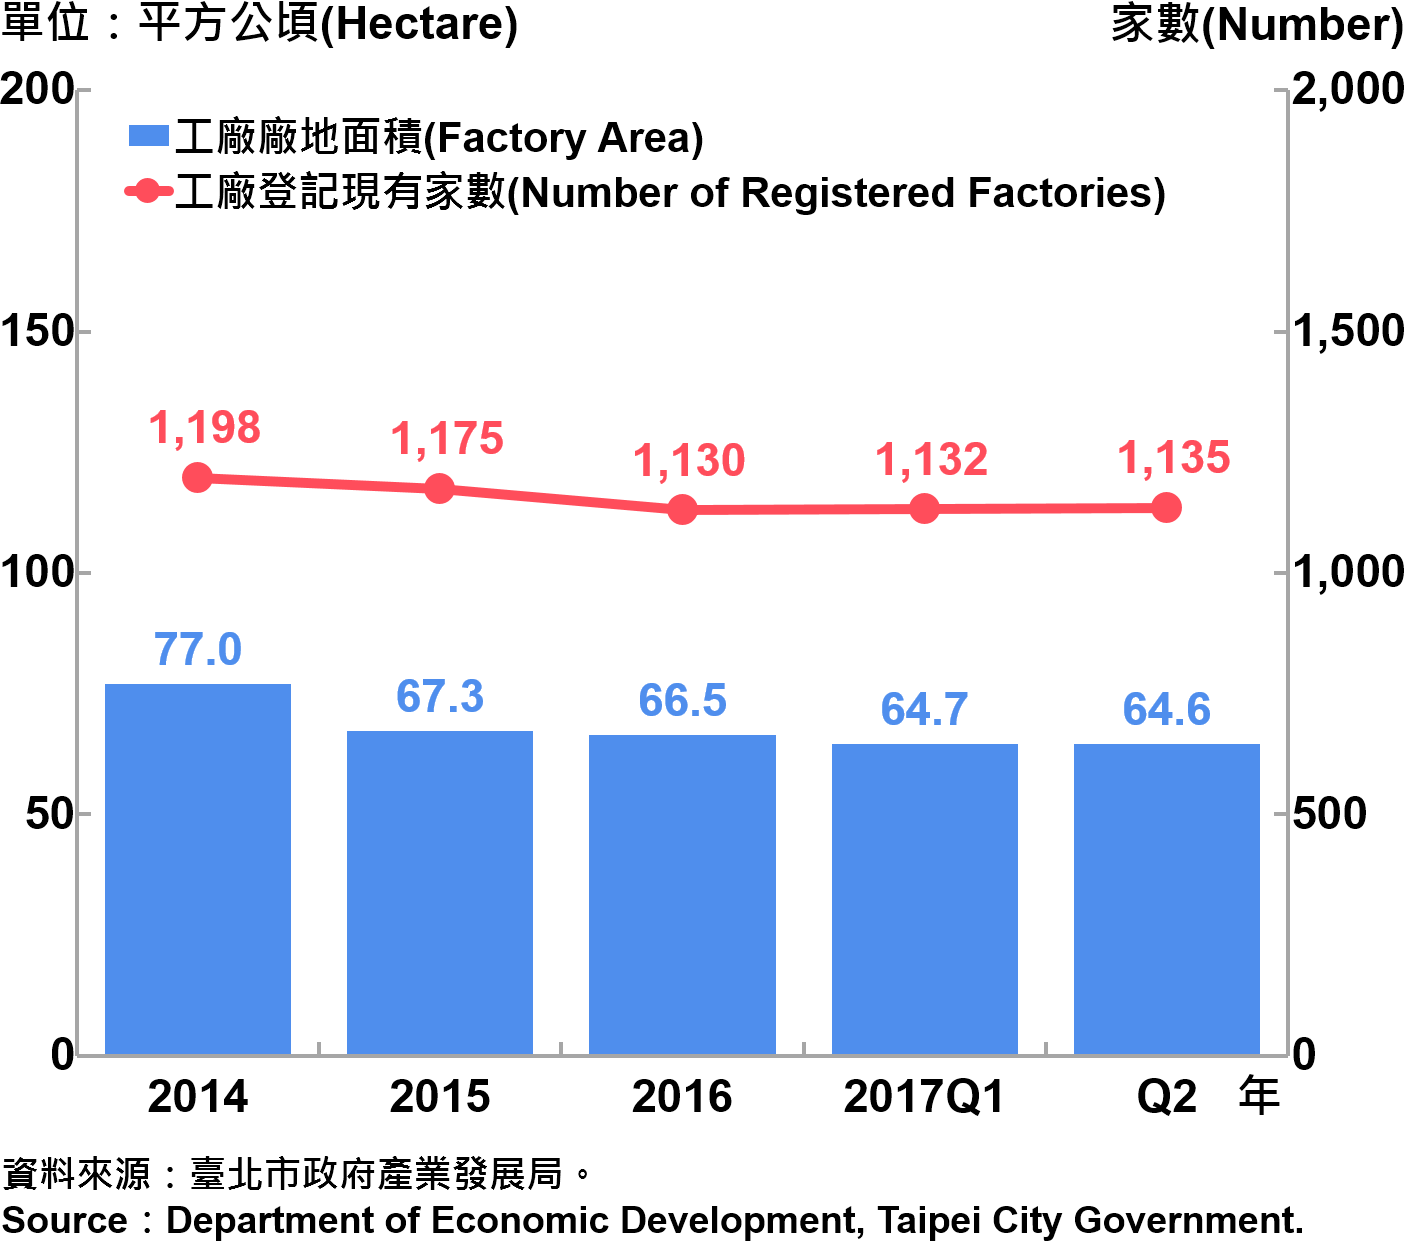 圖6、臺北市工廠登記家數及廠地面積—2017Q2  Number of Factories Registered and Factory Lands in Taipei City—2017Q2